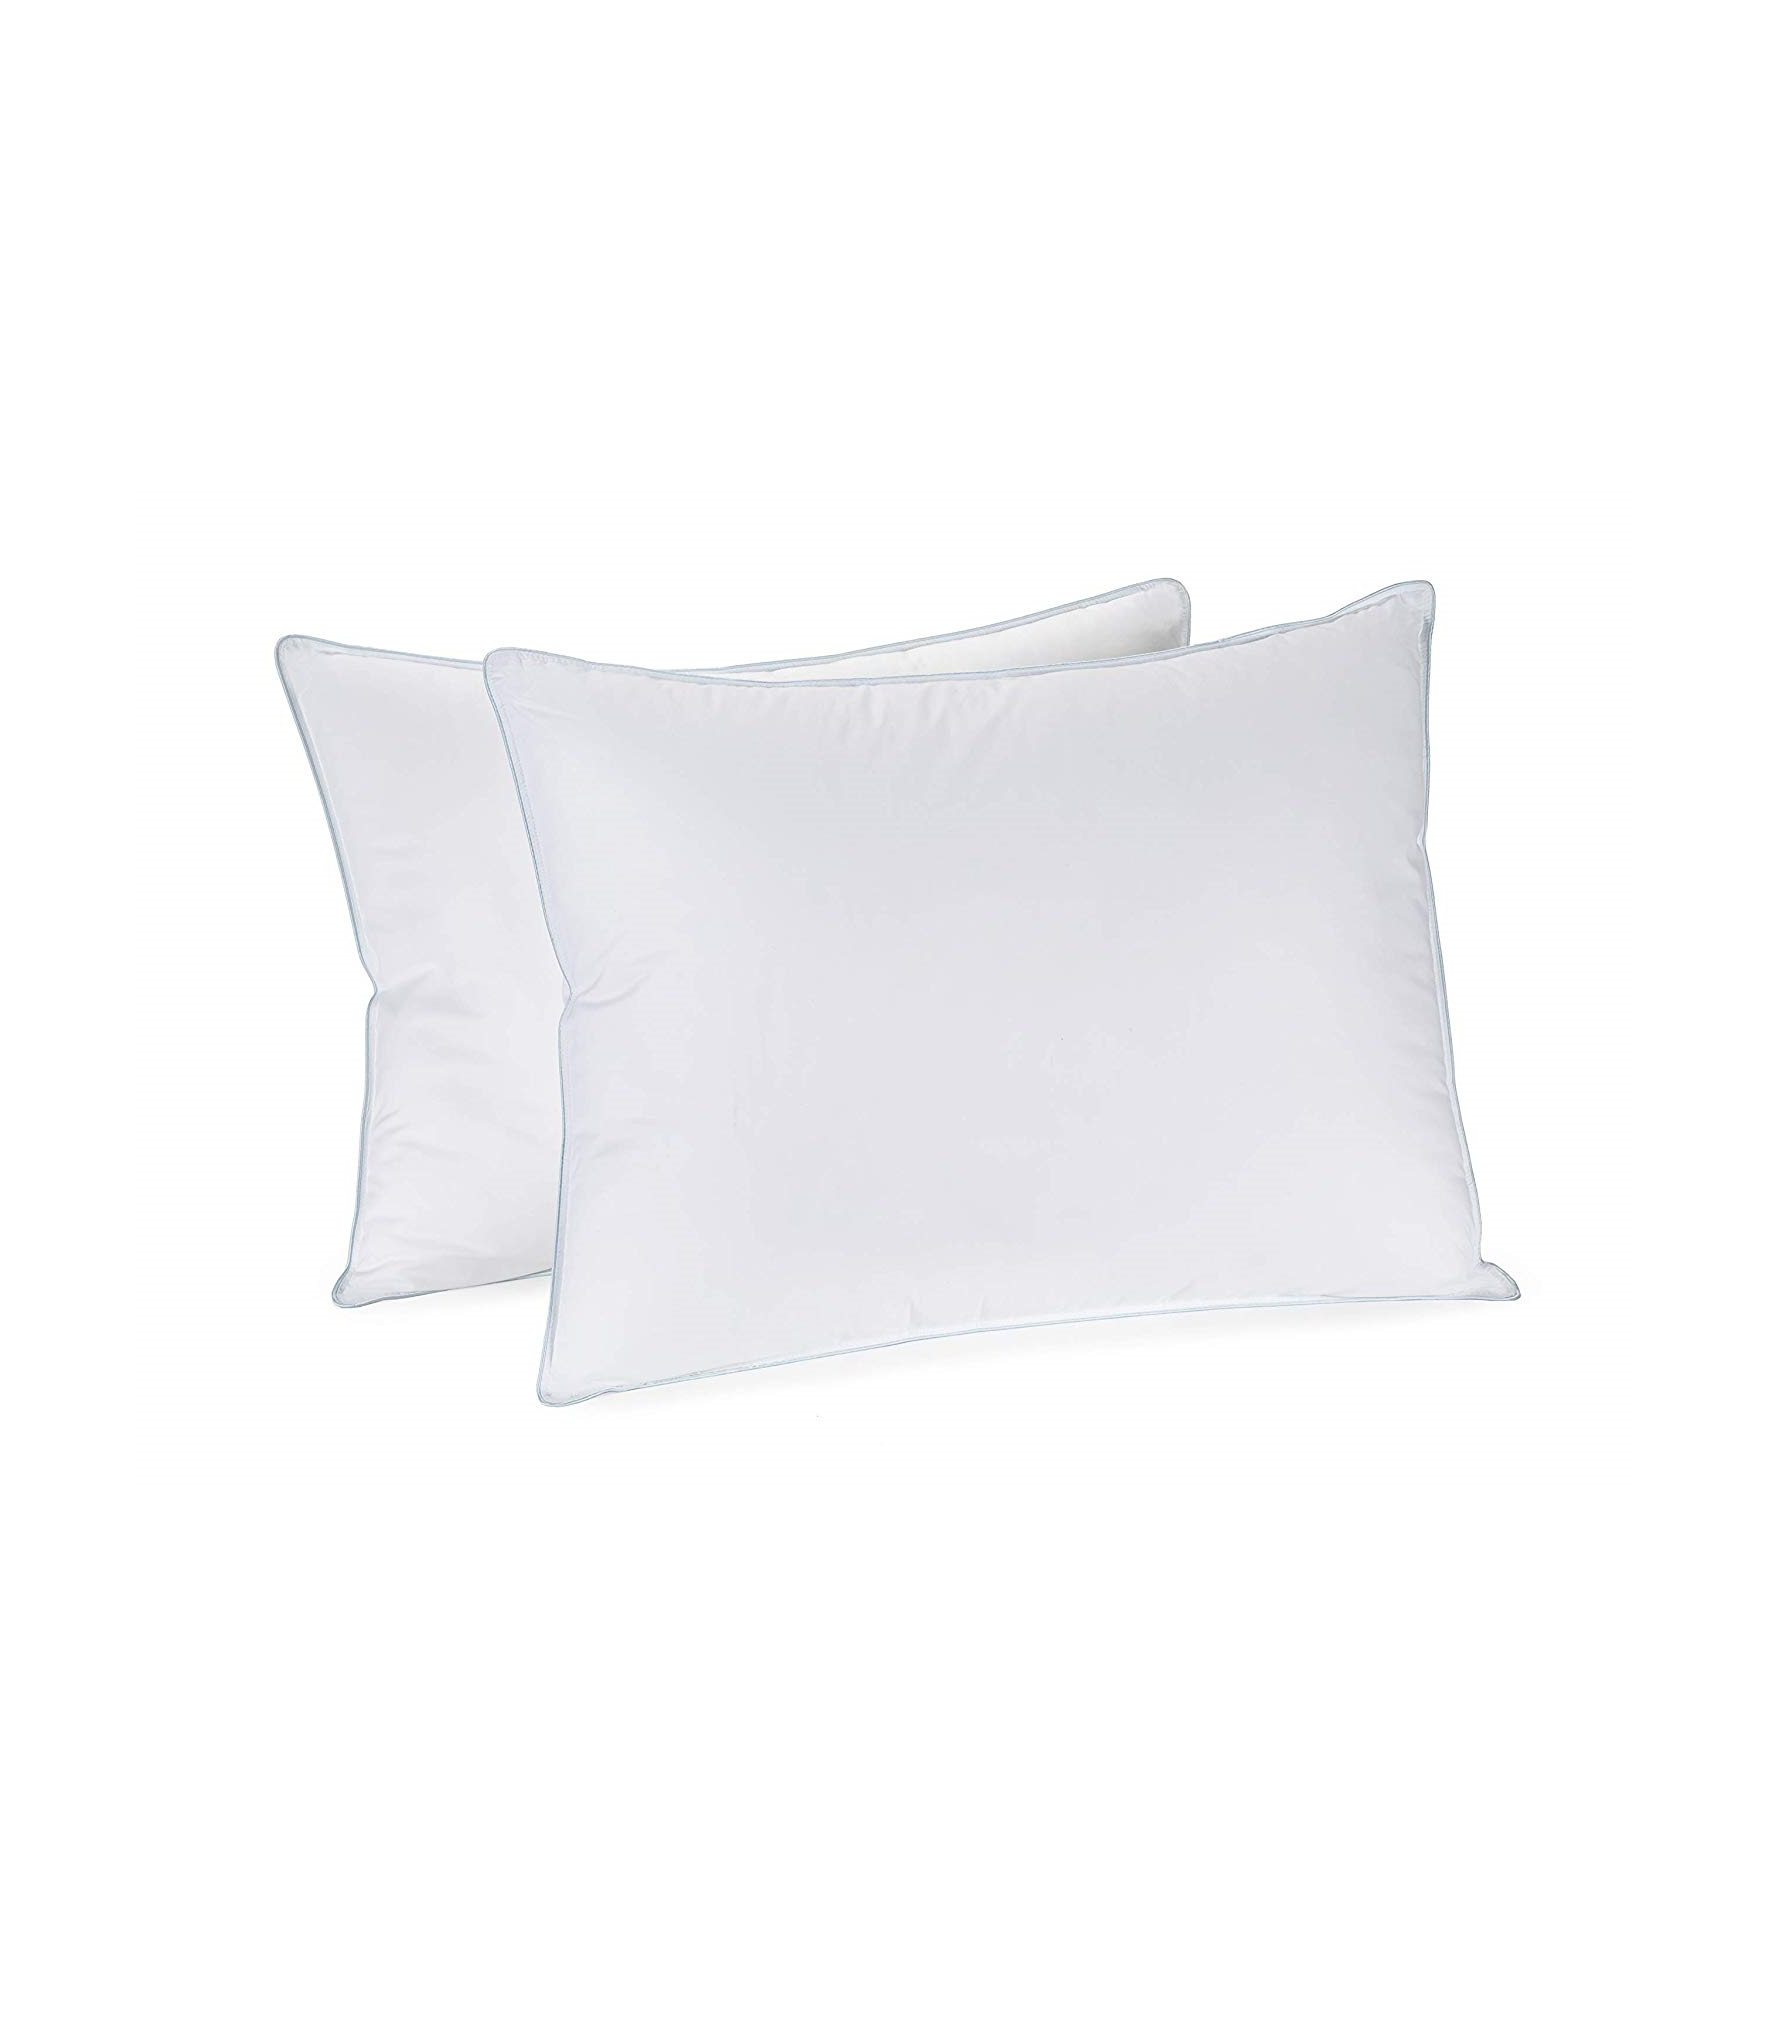 In Style Furnishings - Set of 2 Luxury Pillows